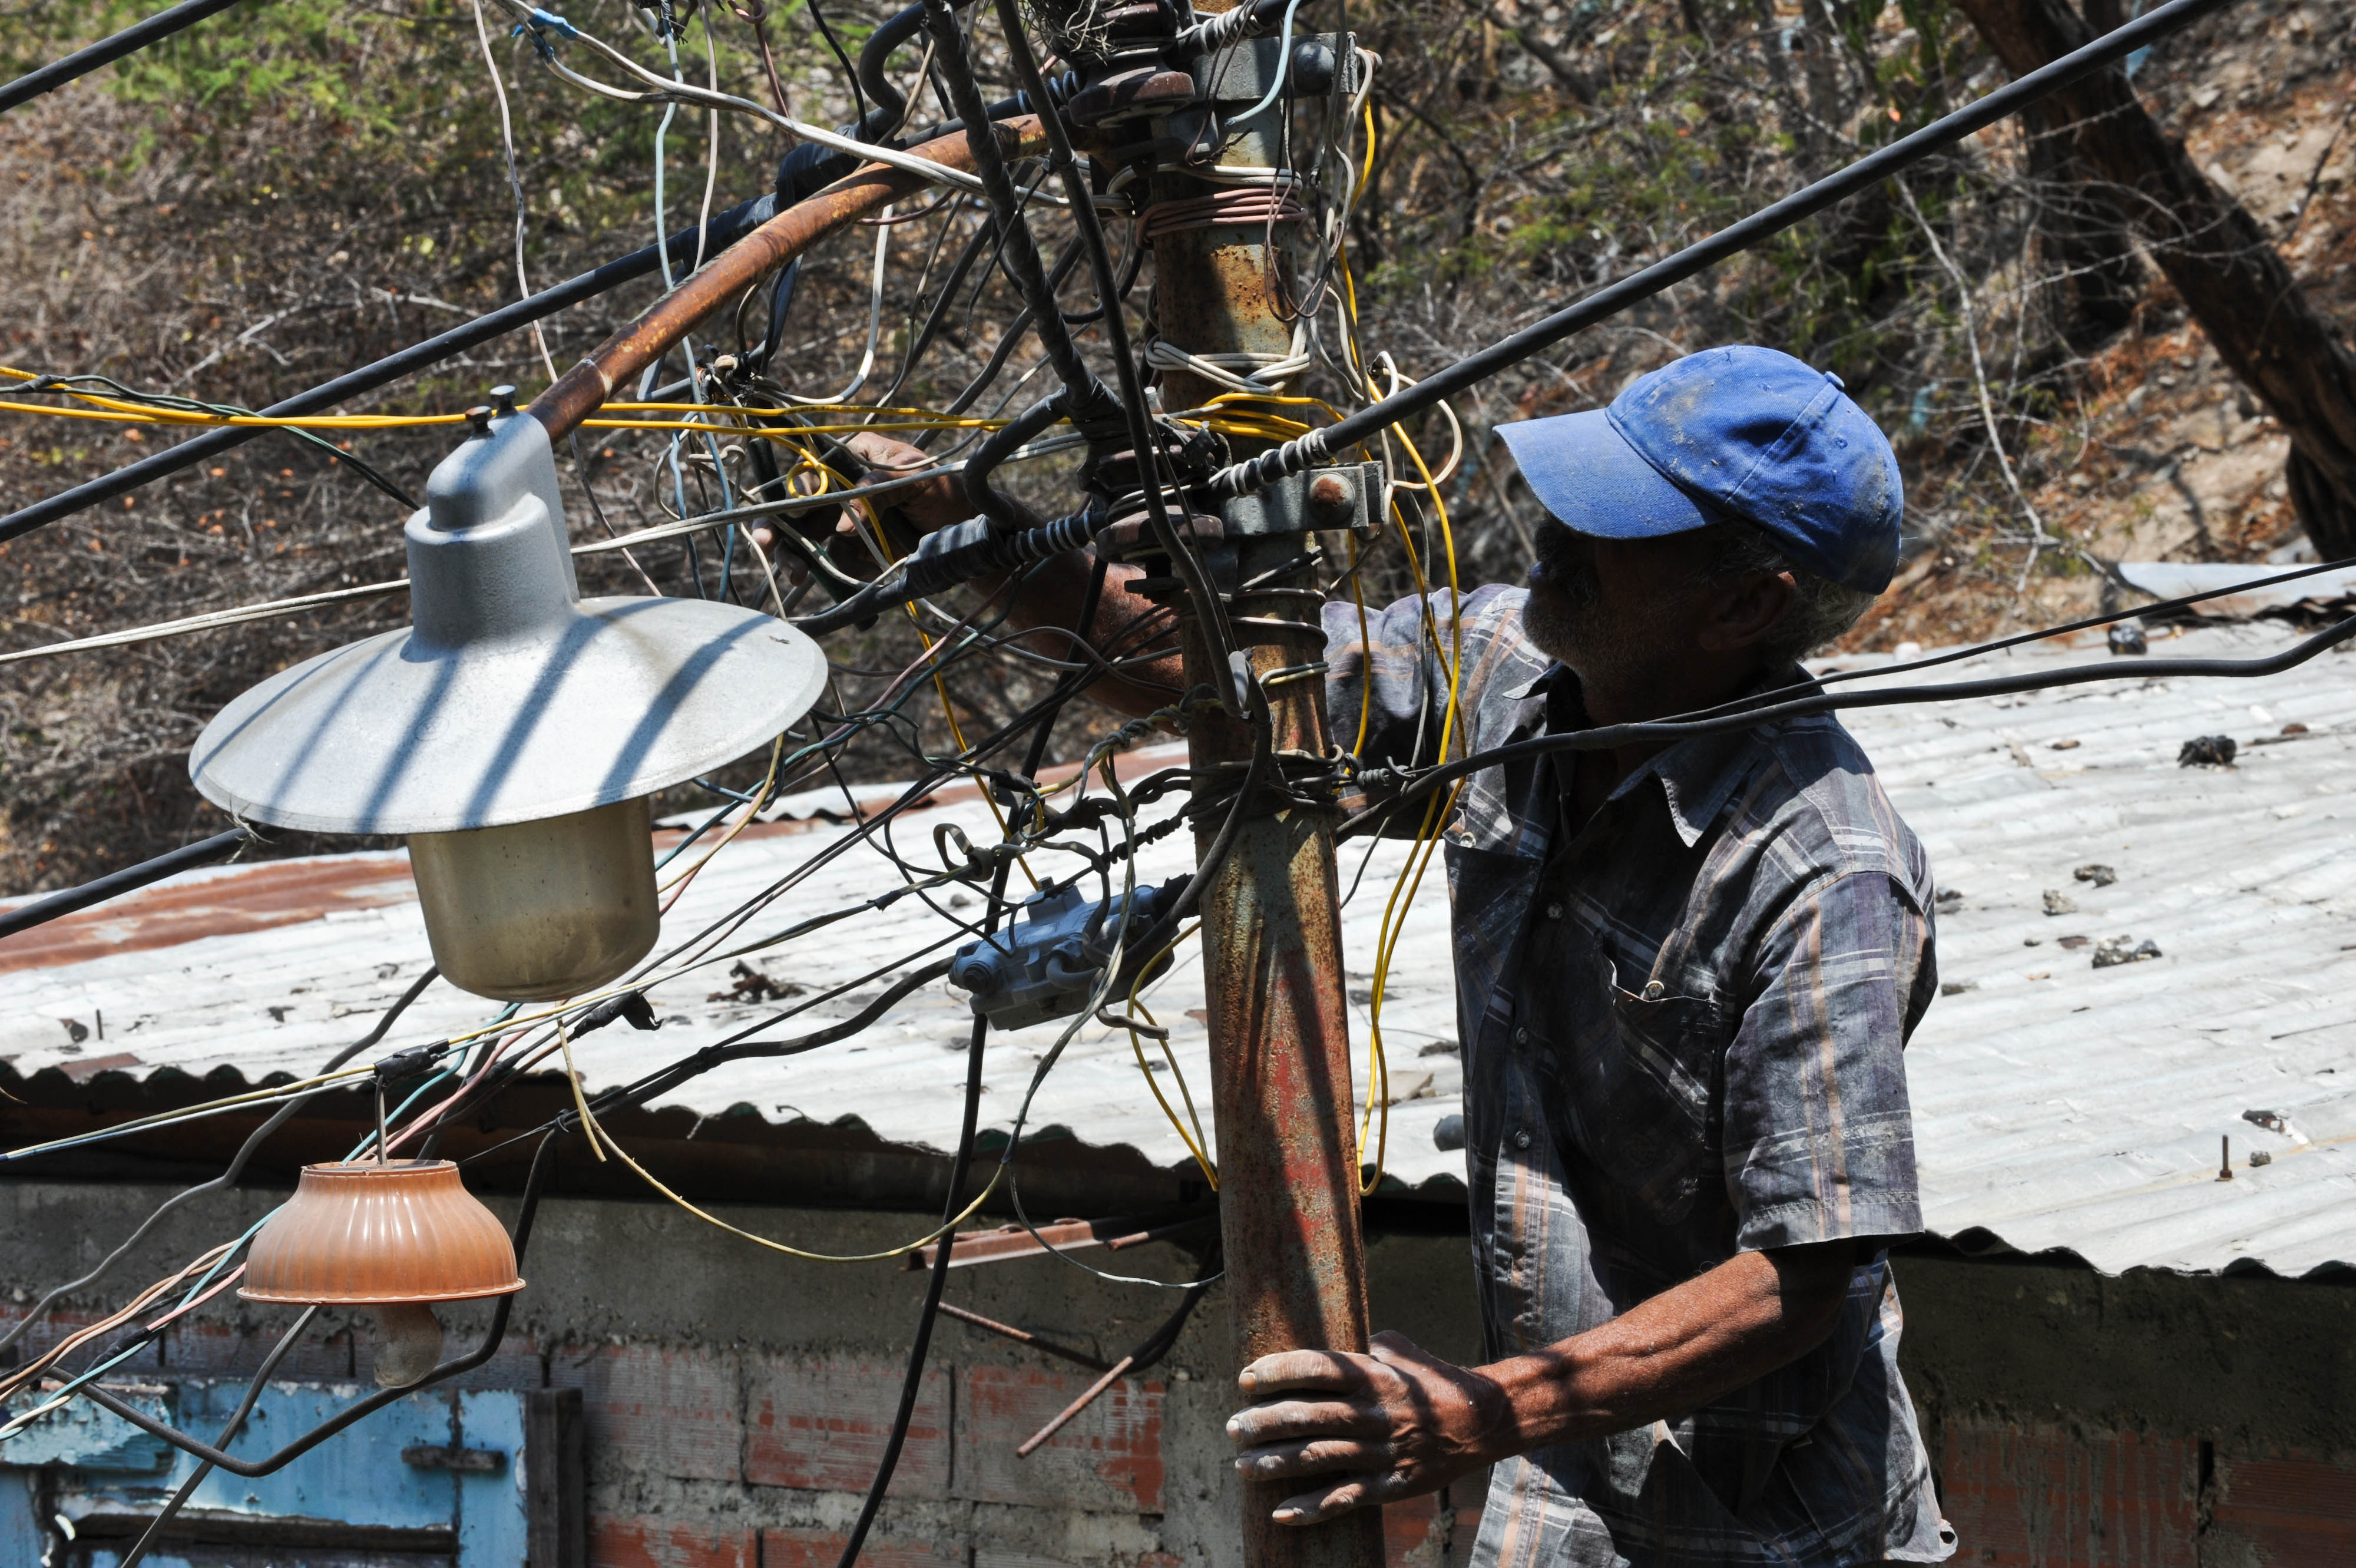 Wiring Money Illegally Venezuela To Ration Electricity In Power Crisis A Man Wires His House The Public Network Caracas March 4